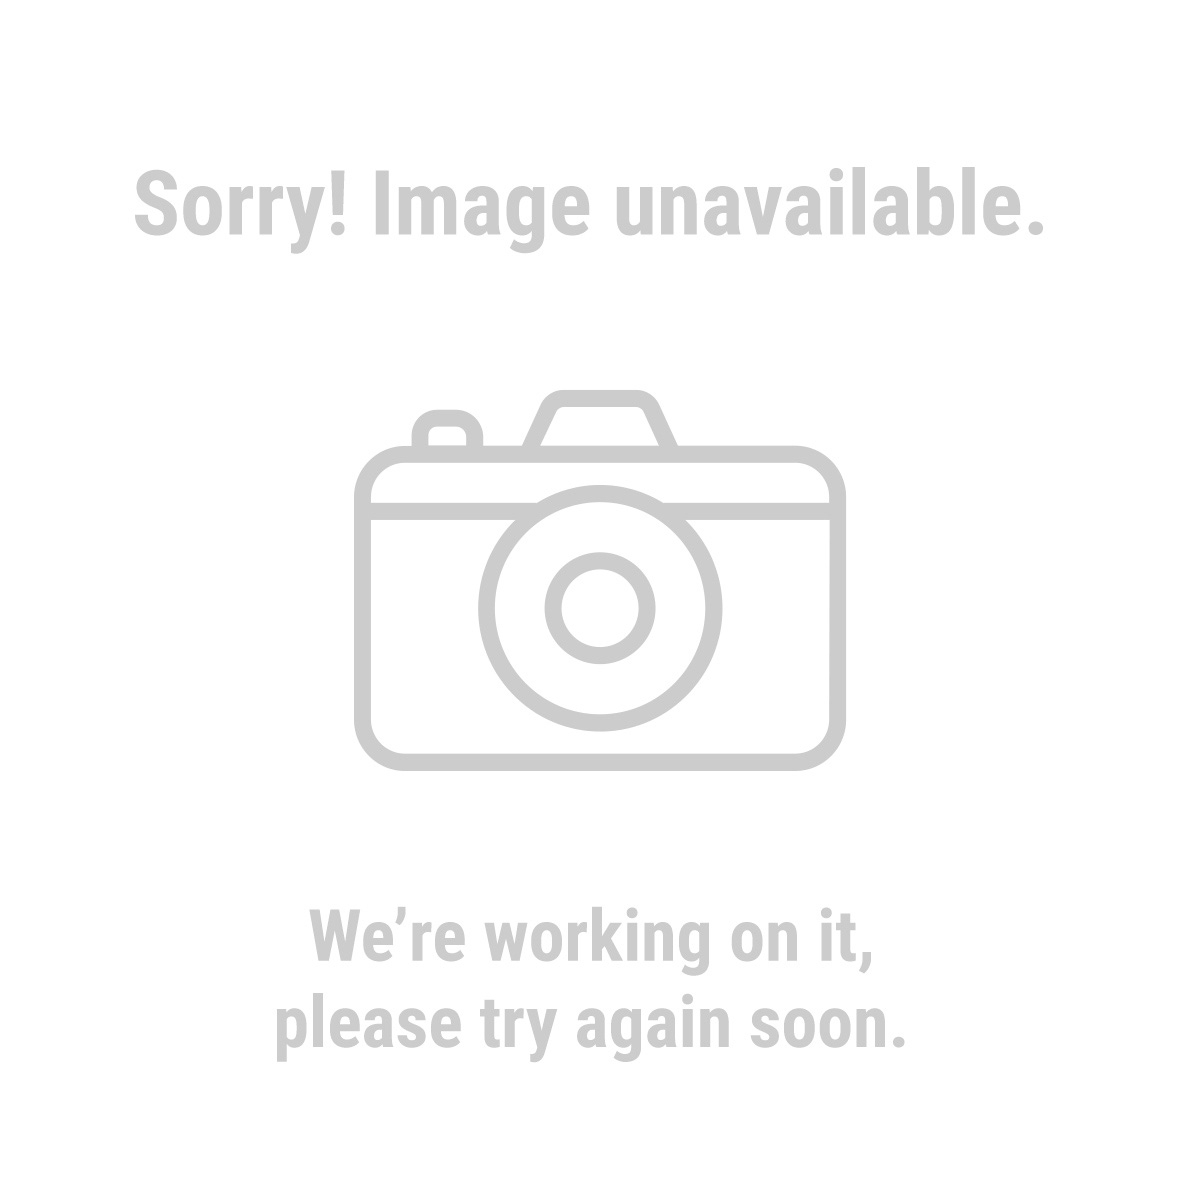 Haul-Master® 62484 Drywall Panel Hoist / Lift